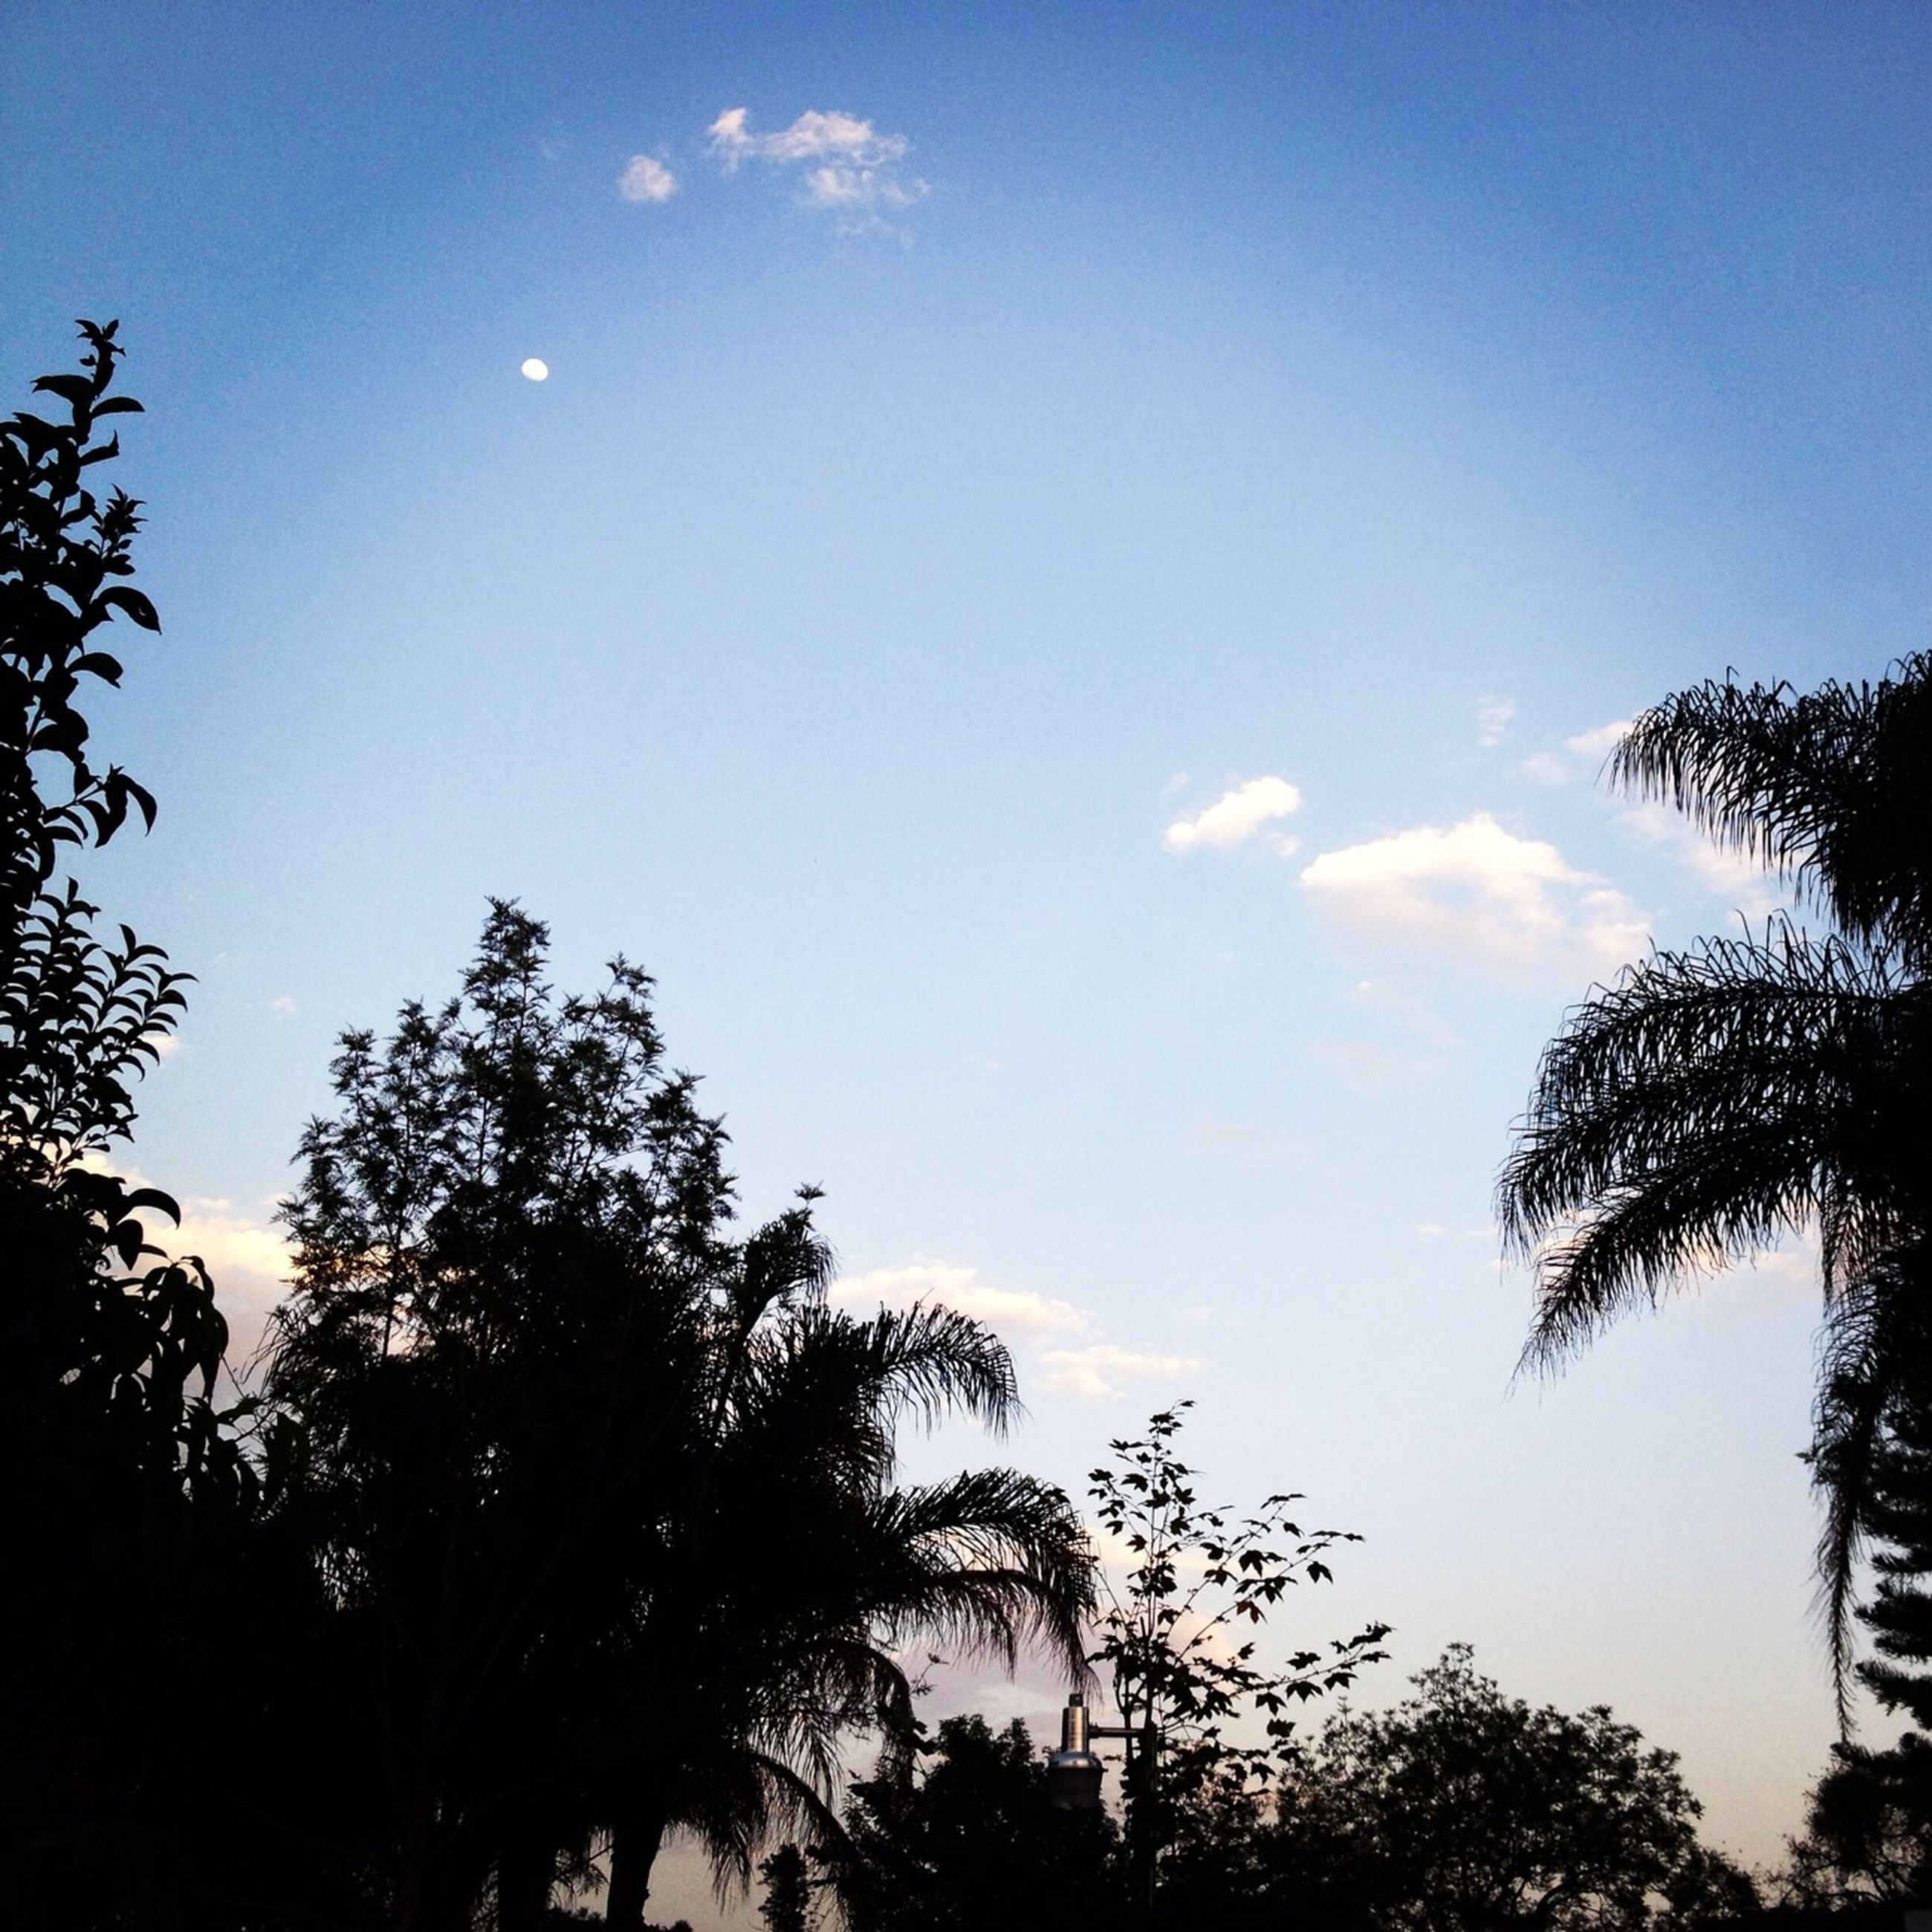 tree, low angle view, silhouette, sky, blue, growth, tranquility, nature, beauty in nature, scenics, tranquil scene, branch, sunlight, treetop, palm tree, clear sky, outdoors, no people, high section, day